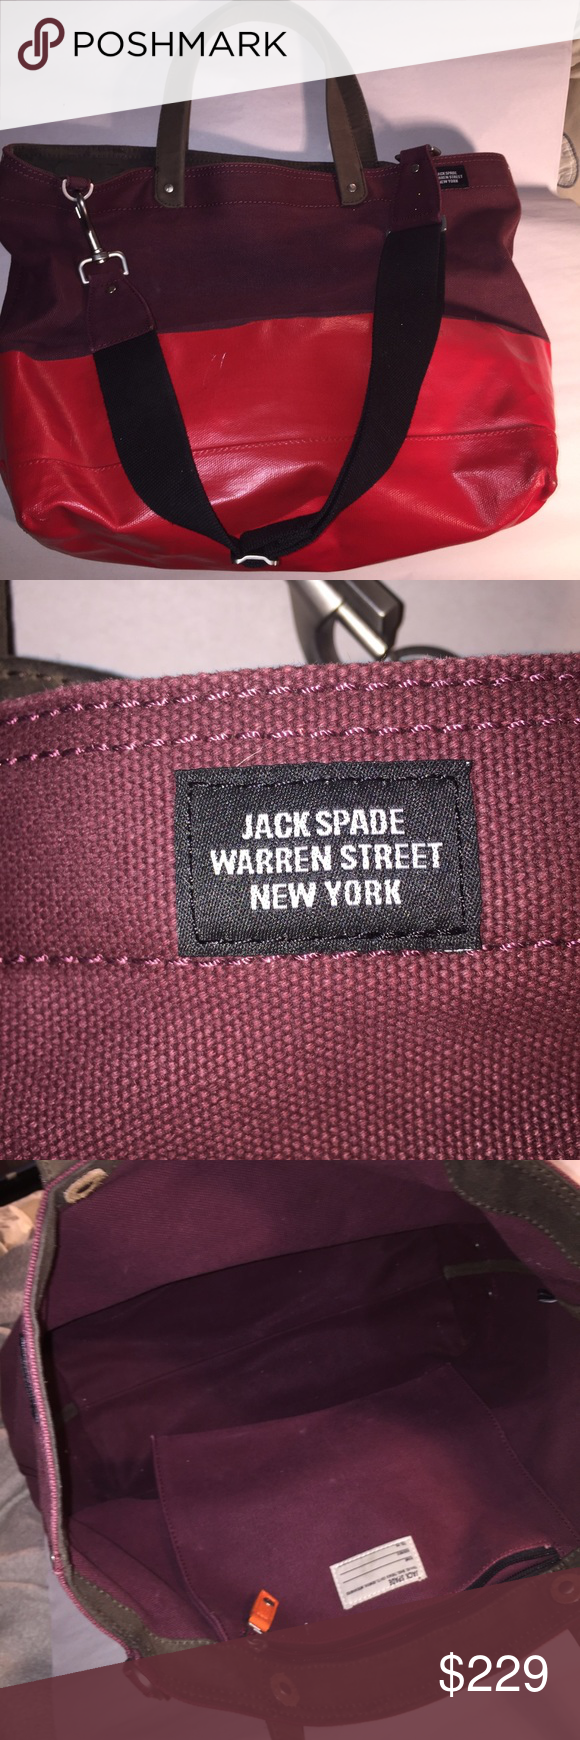 23dbe7daf JACK SPADE wax wear dipped canvas coal tote overall neat and clean,  includes shoulder/crossbody strap. One small scratch on red wax and a  couple of ...